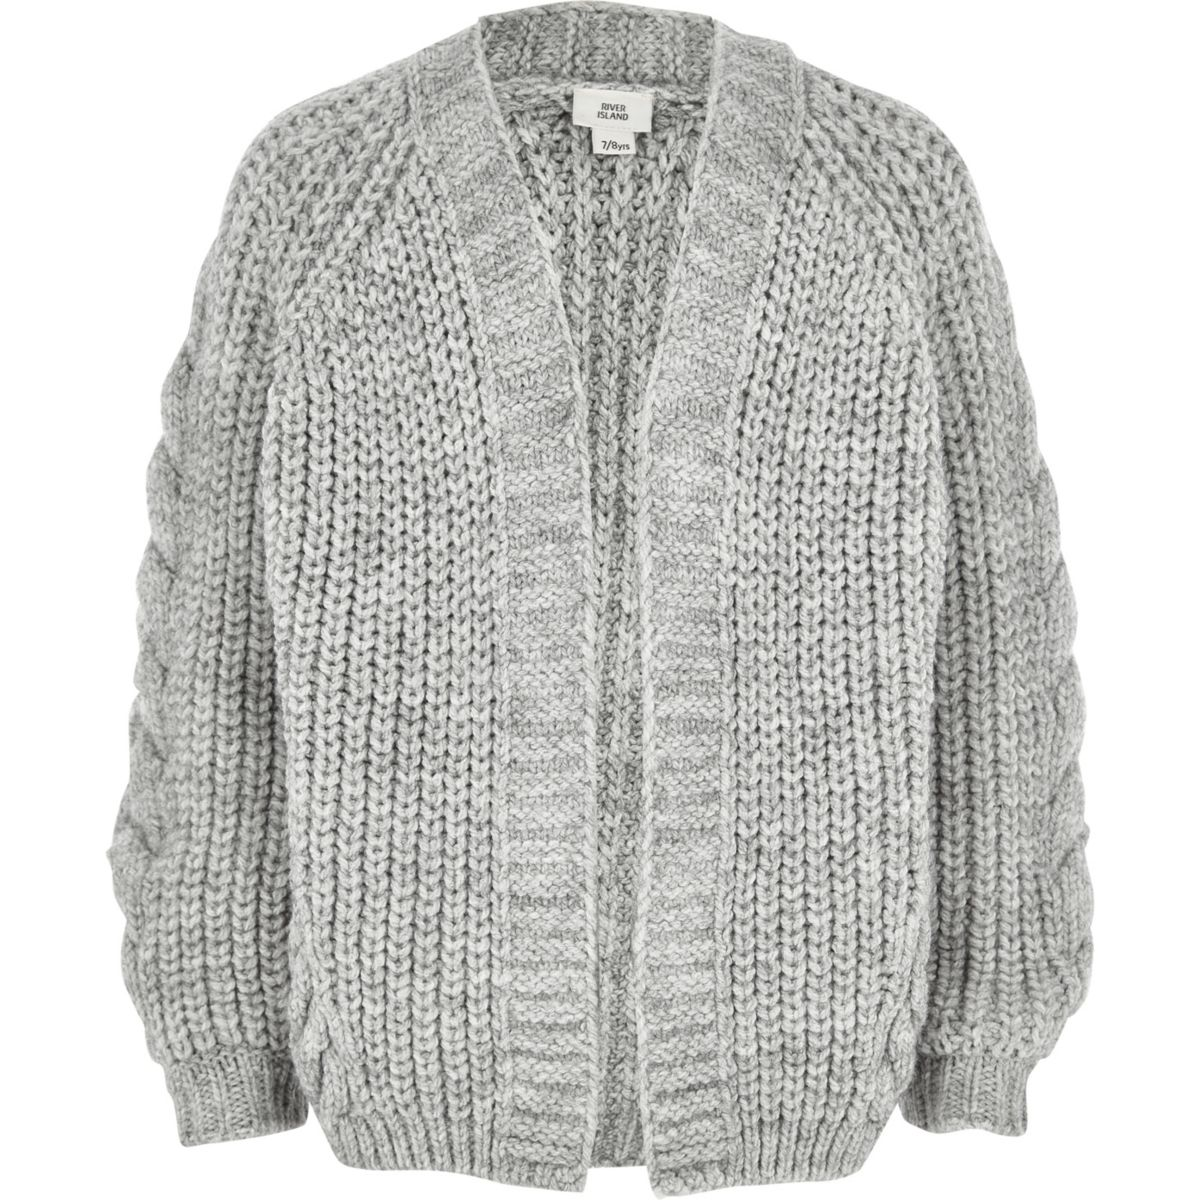 Girls chunky cable knit cardigan